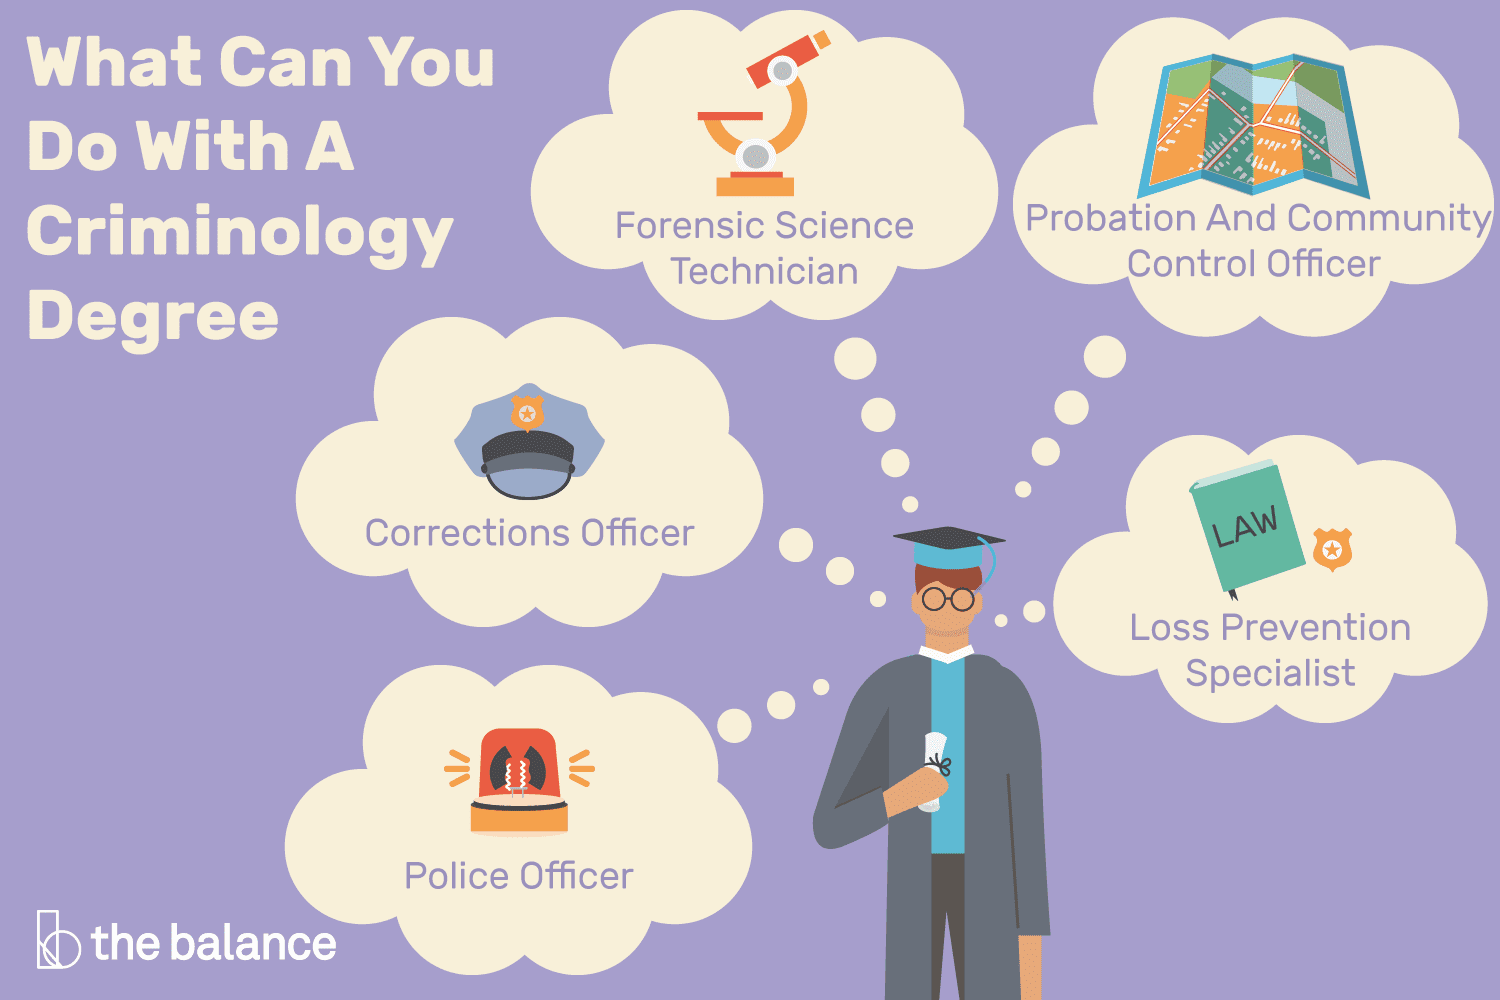 jobs with a criminology degree